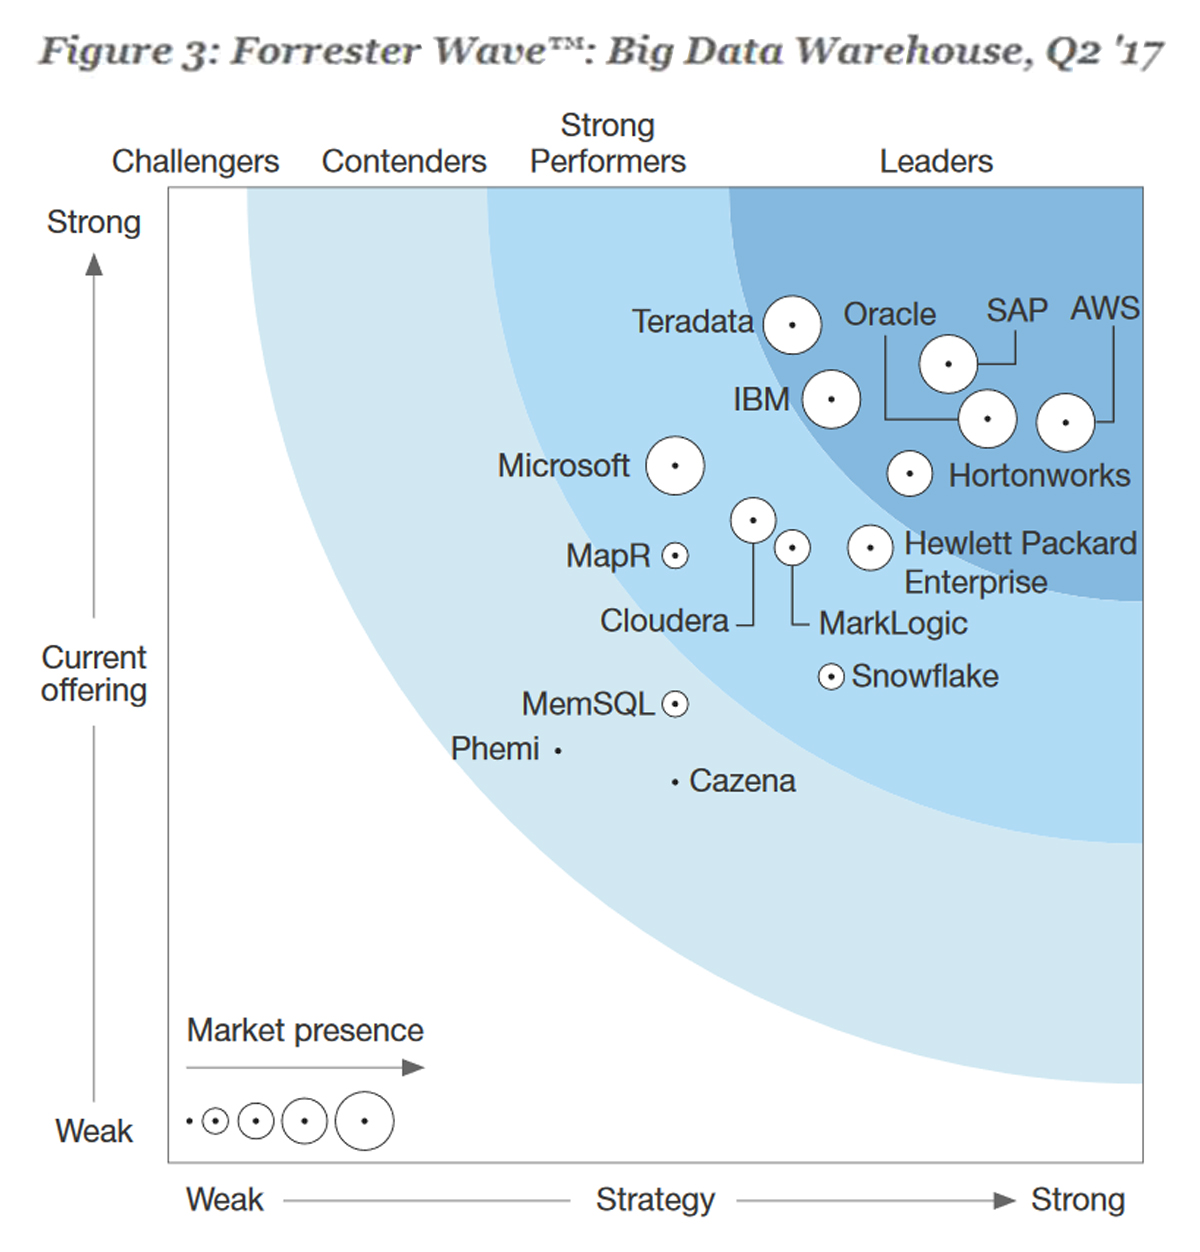 The Forrester Wave™: Big Data Warehouse, Q2 2017